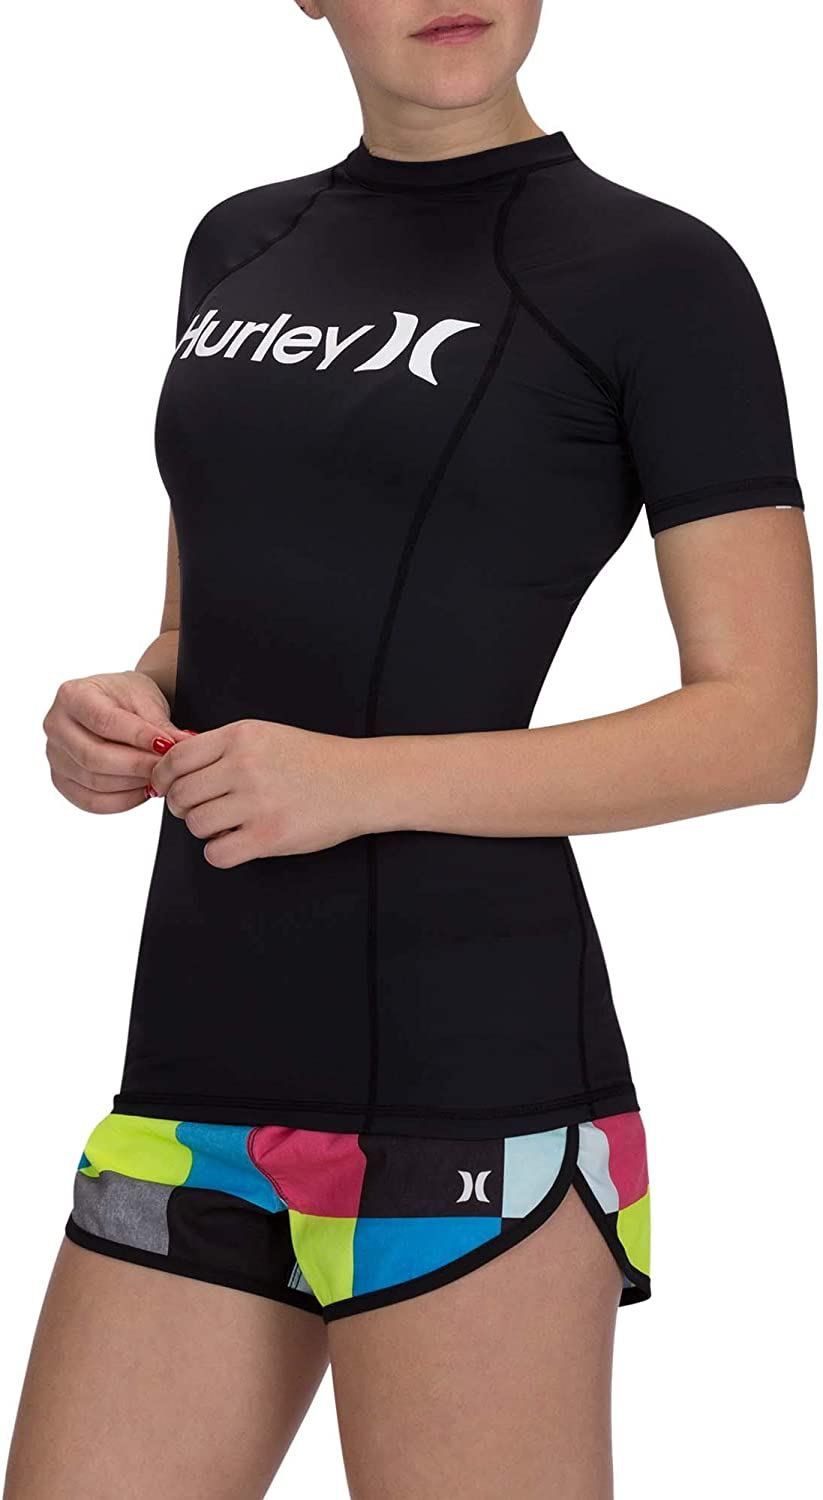 Hurley Womens Sun Shirt Rashguard SPF 50 Protection